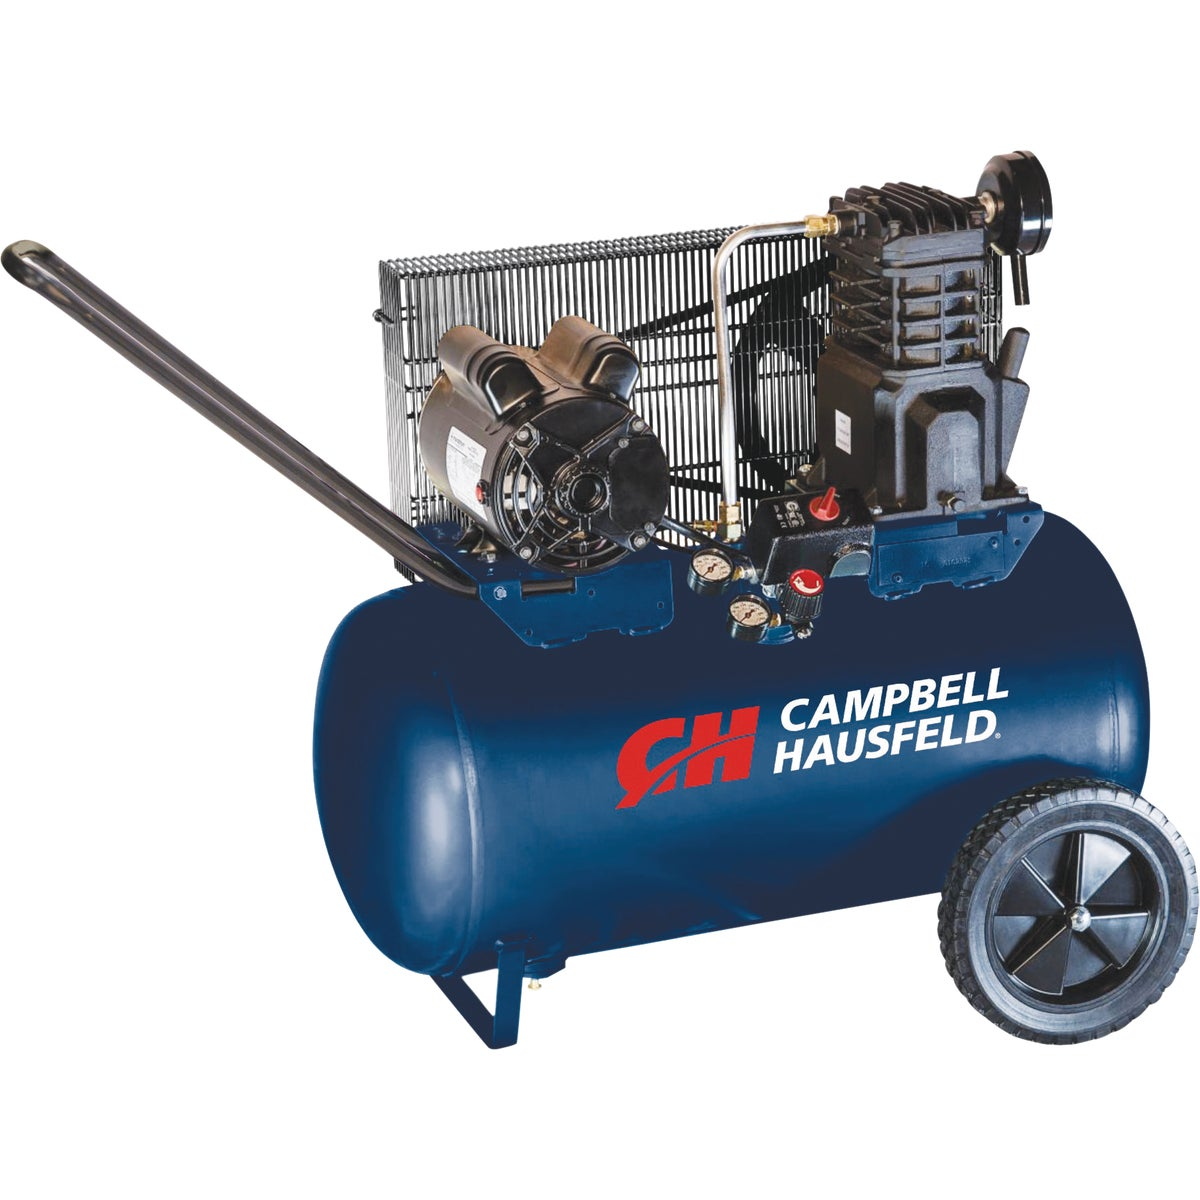 20GL HORZ AIR COMPRESSOR - VT6290 by Campbell Hausfeld Co